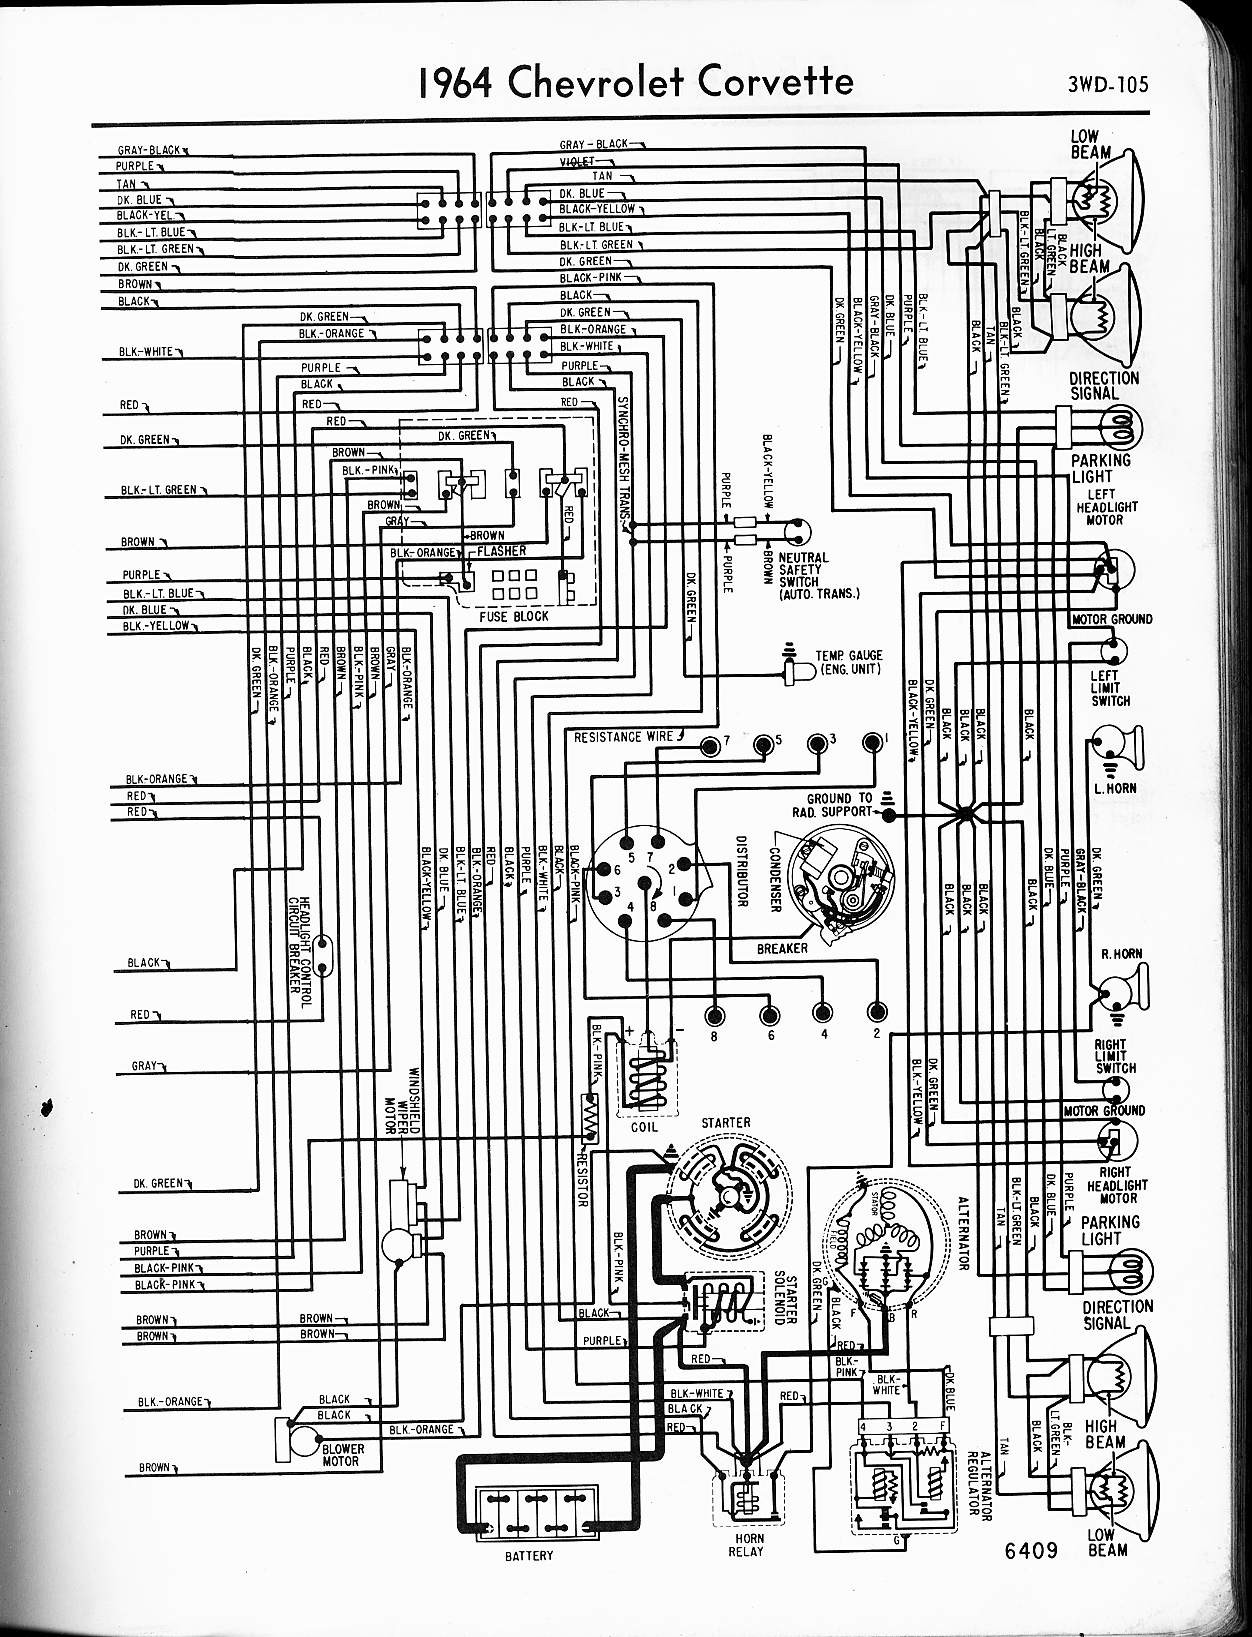 1966 corvette ac wiring auto electrical wiring diagram rh wiring radtour co  1964 Corvette Wiring Diagram 1962 Corvette Wiring Diagram